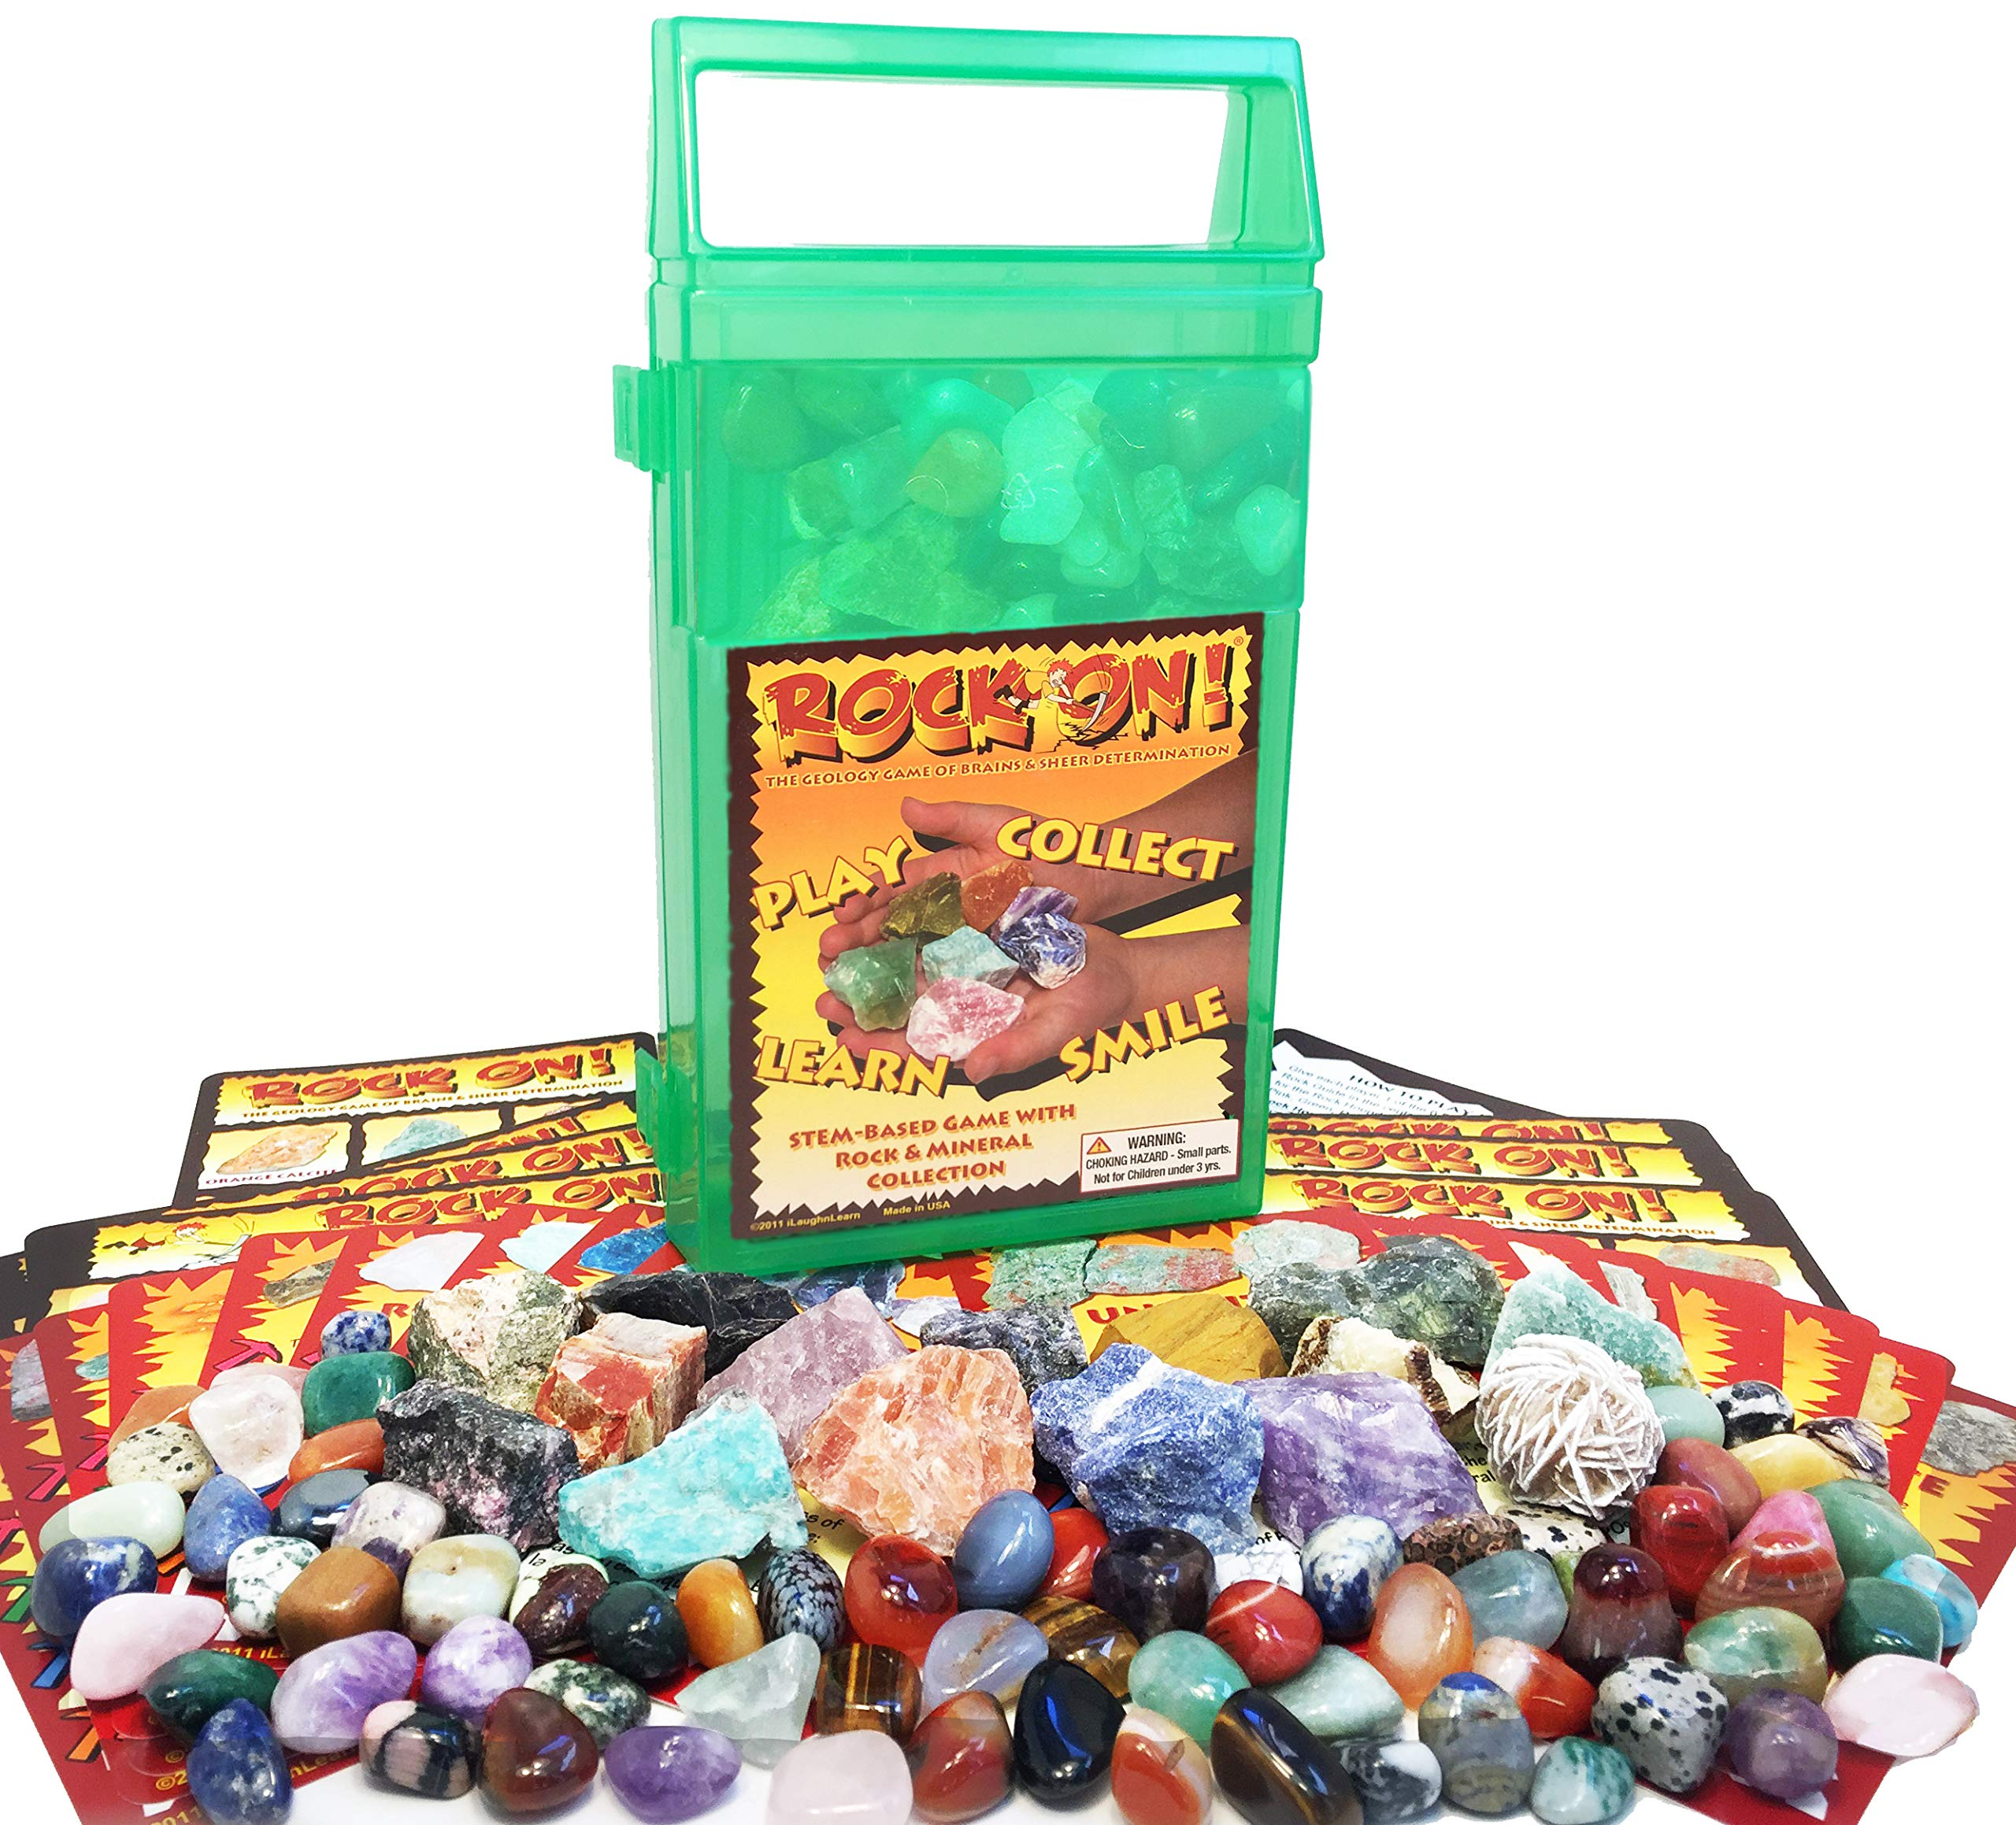 ROCK ON! Geology Game with Rock & Mineral Collection - Collect and Learn with STEM-based Educational Science Kit in Carrying Case - Amethyst, Rhodonite, Selenite Crystal, Unakite and lots more by iLaughnLearn